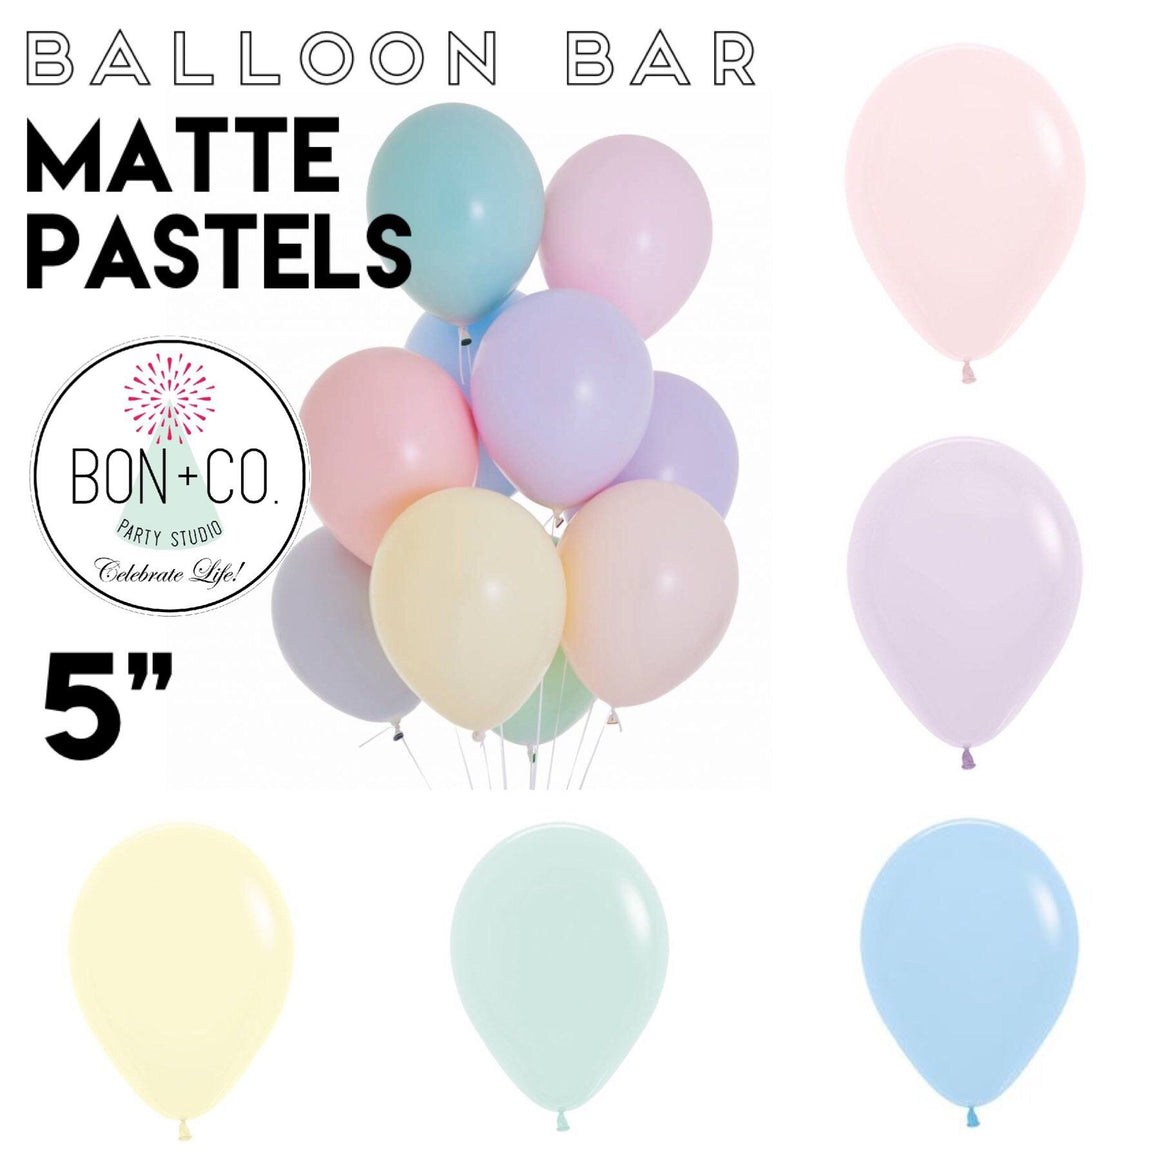 "BALLOON BAR - MATTE PASTELS 5"", Balloons, Sempertex - Bon + Co. Party Studio"